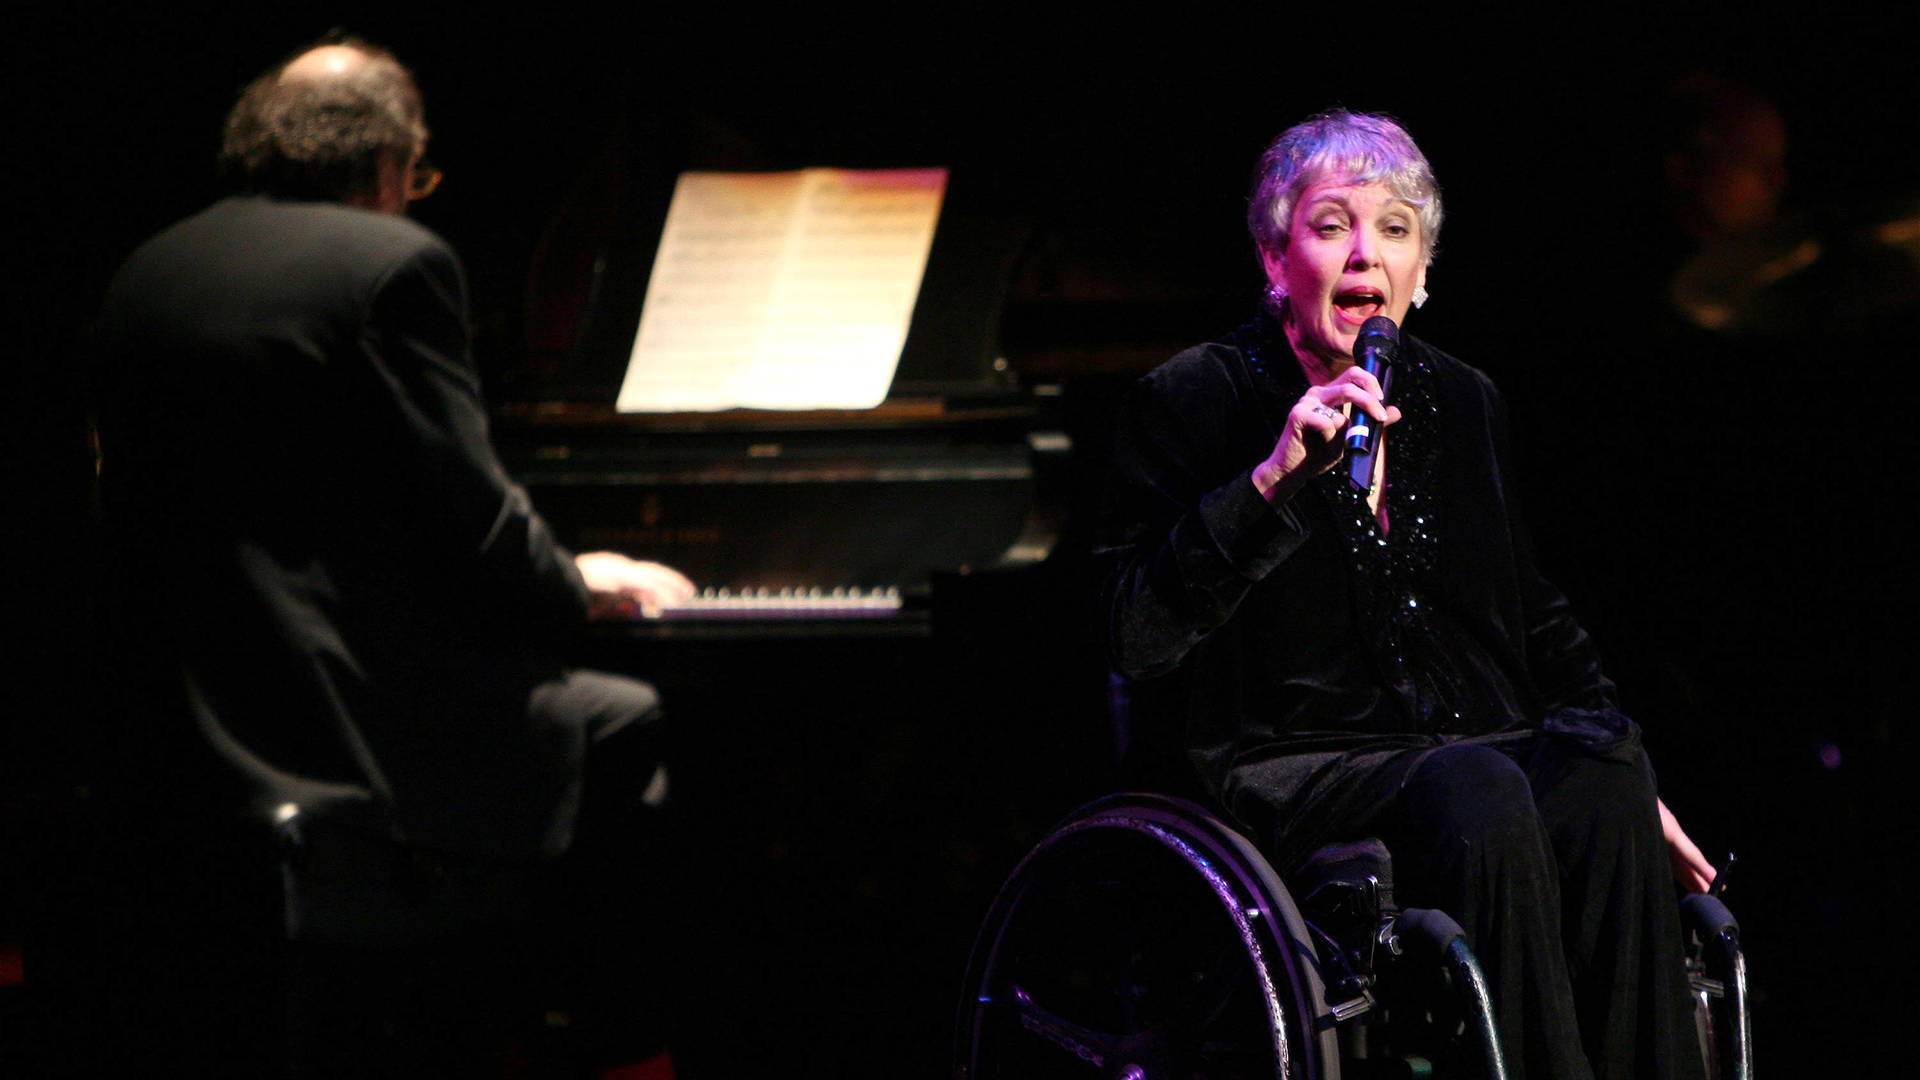 Wesla Whitfield performs at the Actor's Fund S.T.A.G.E. Too Tribute: Hooray For Love celebrating the music of Harold Arlen on November 12, 2005 in Los Angeles, California.   Photo: David Livingston/Getty Images